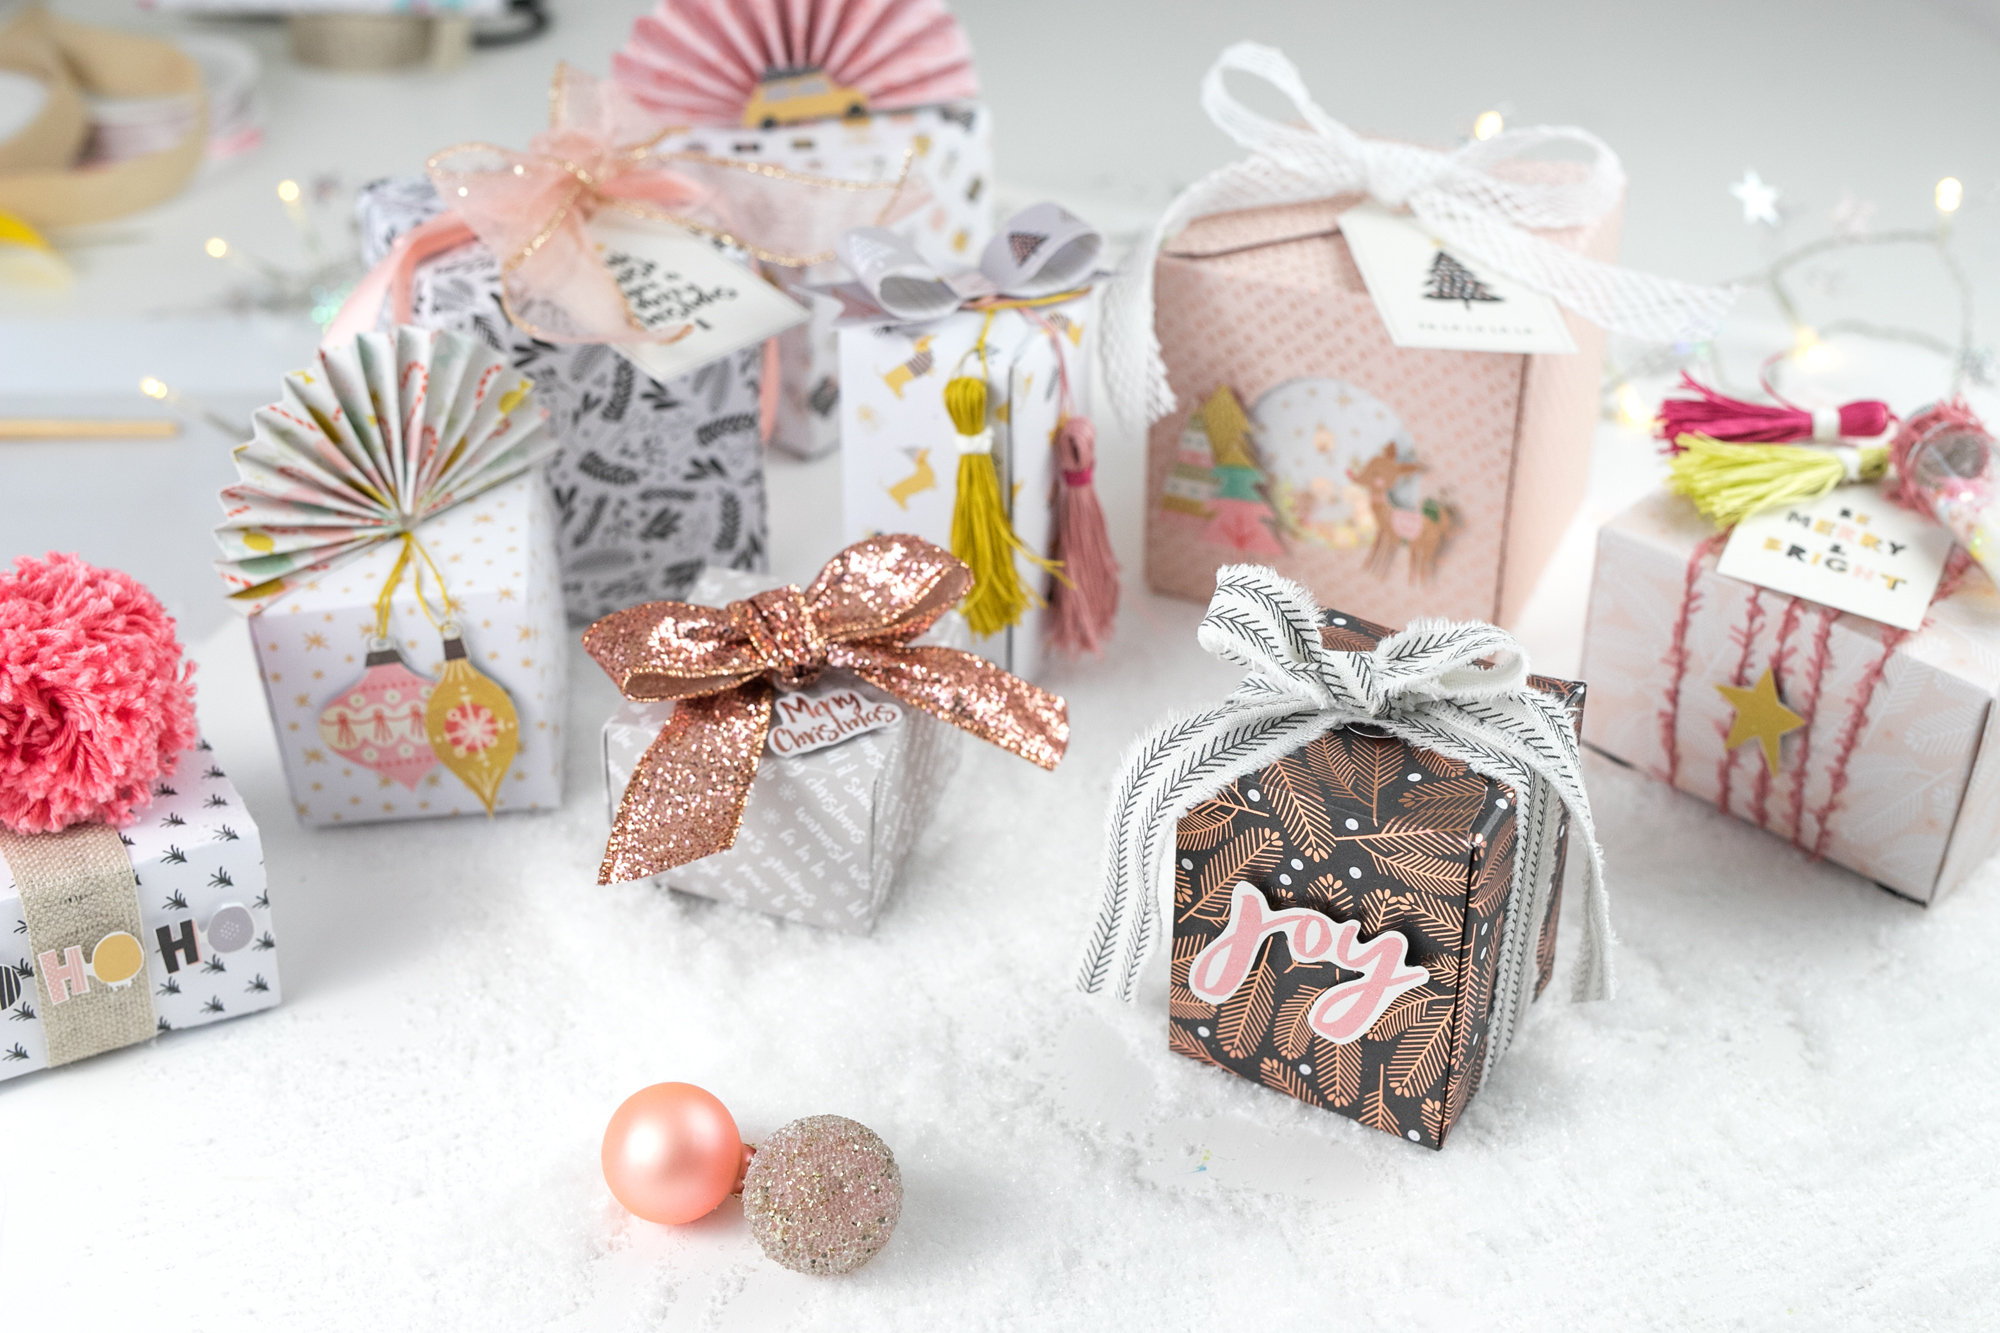 DIY Holiday Gift Boxes by Steffi Ried for We R Memory Keepers